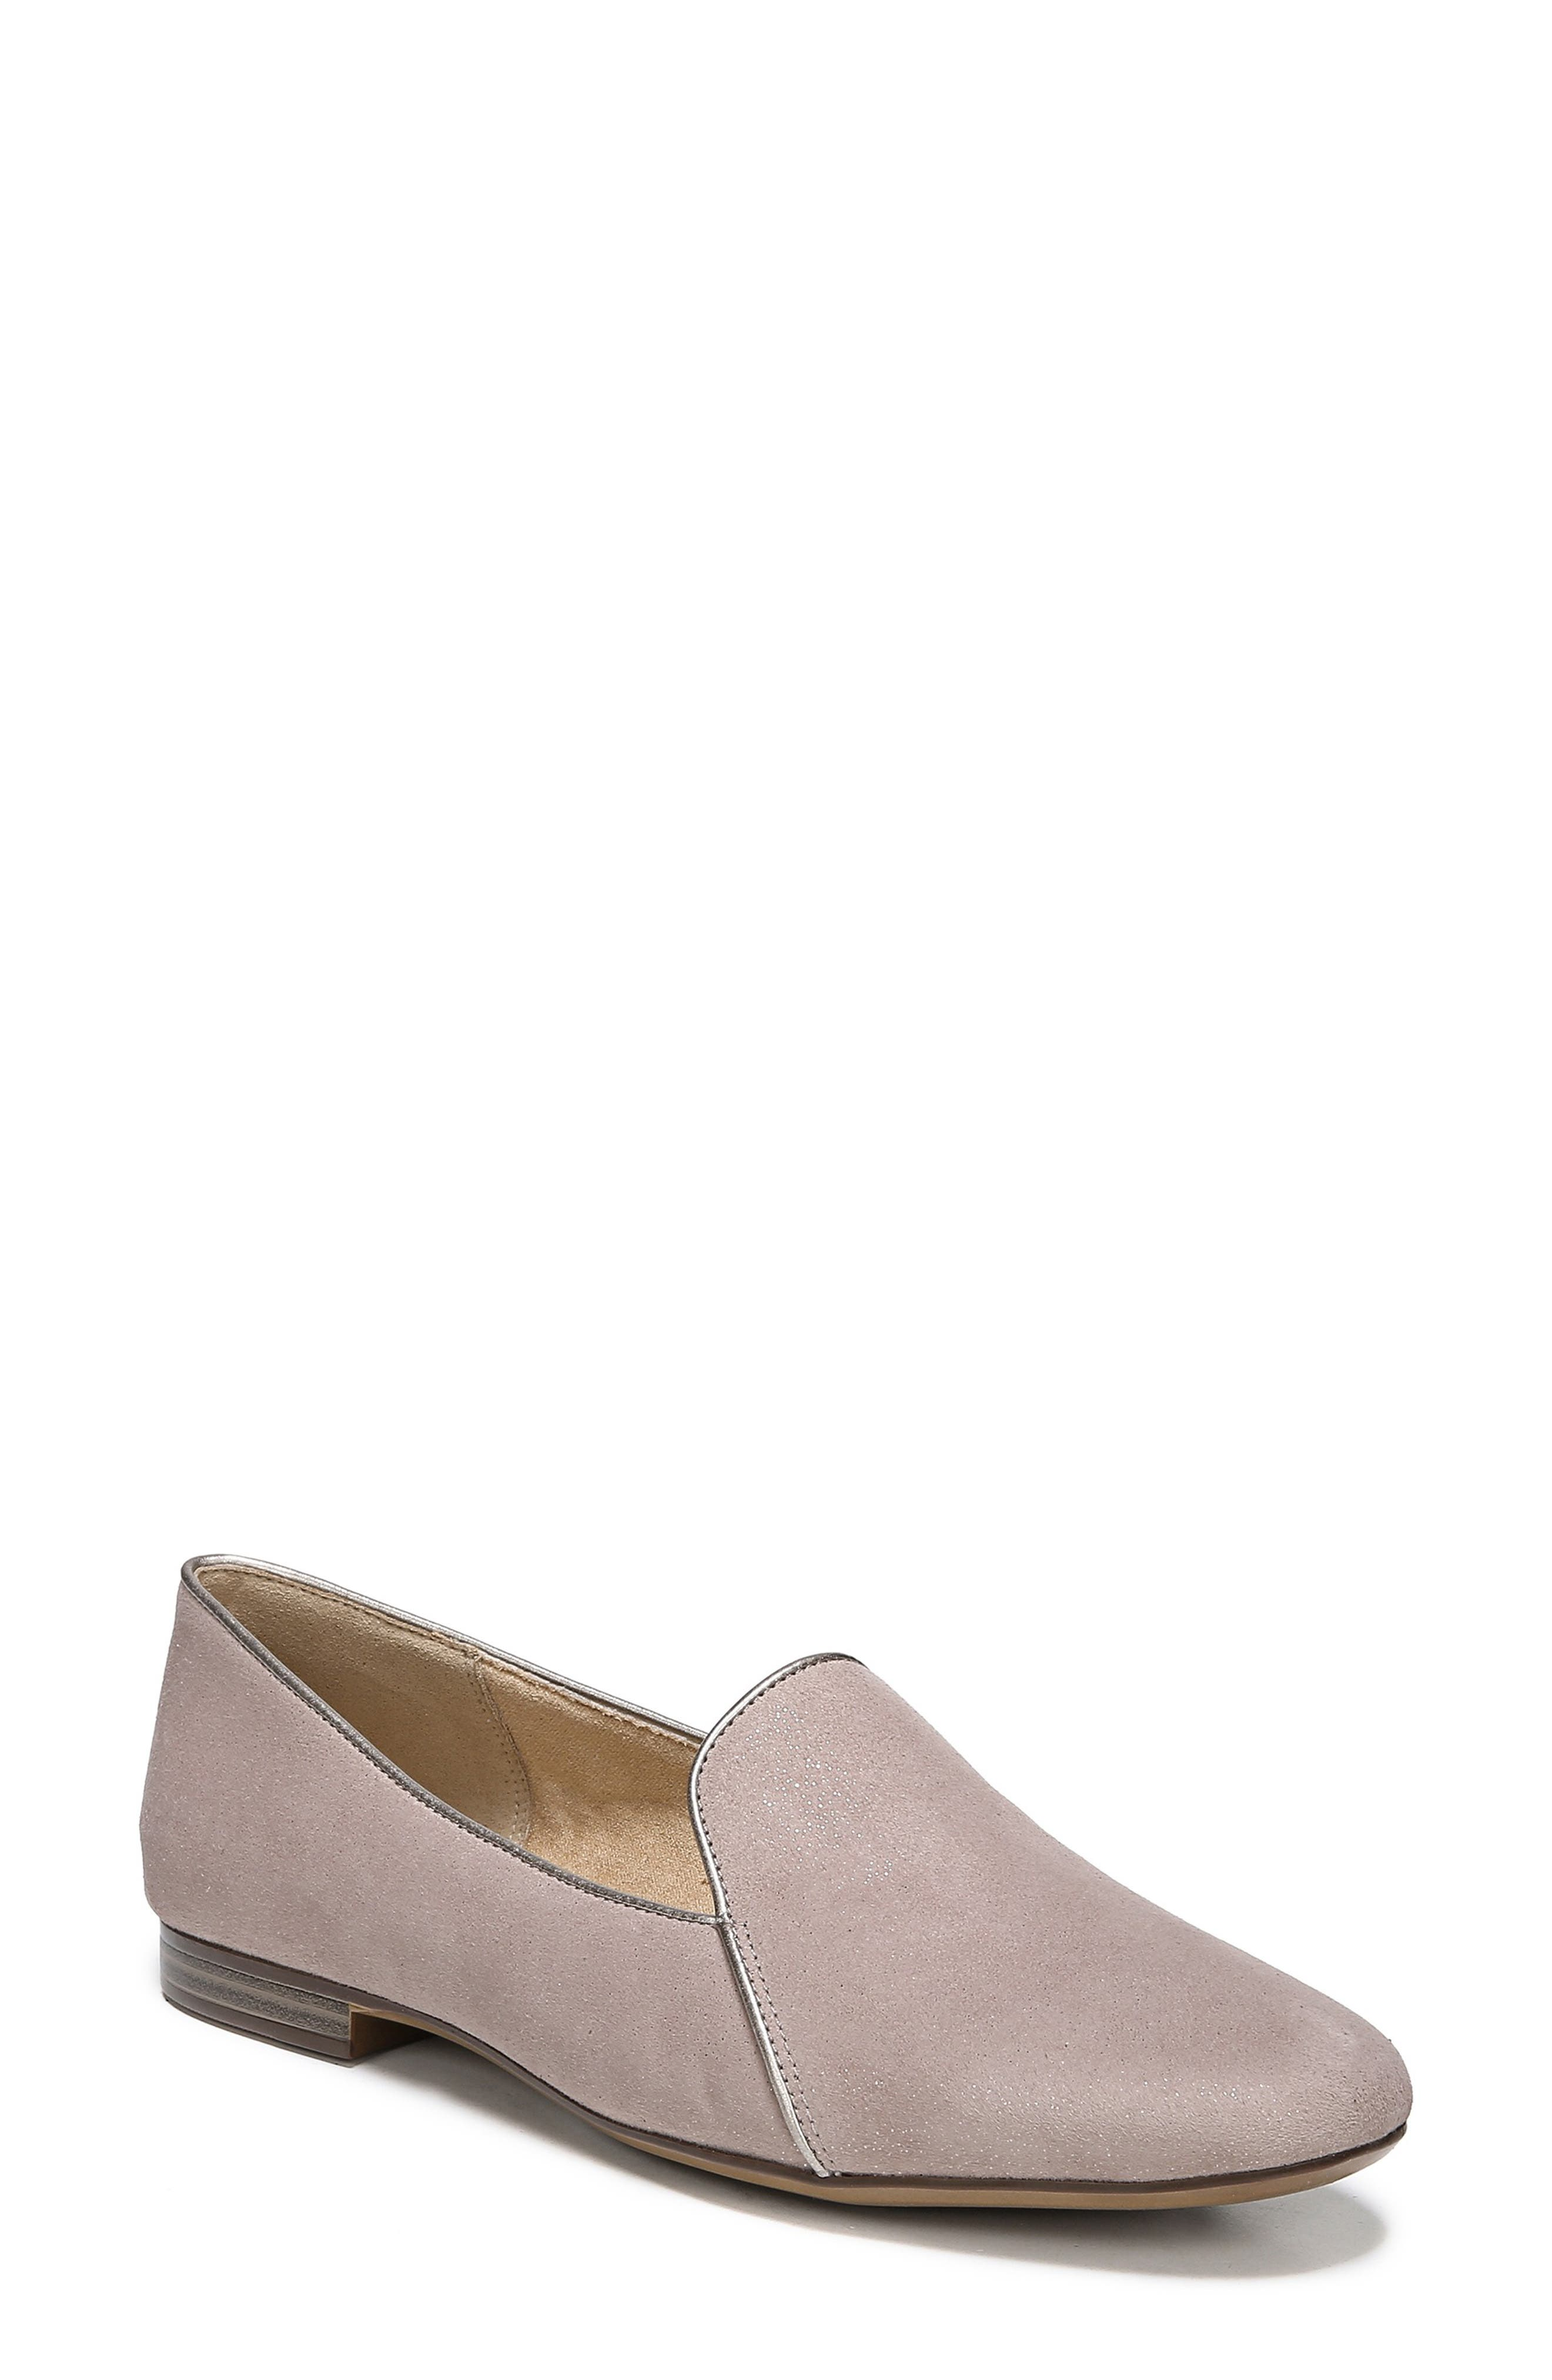 Emiline 2 Loafer,                         Main,                         color, TAUPE GLITTER DUST SUEDE